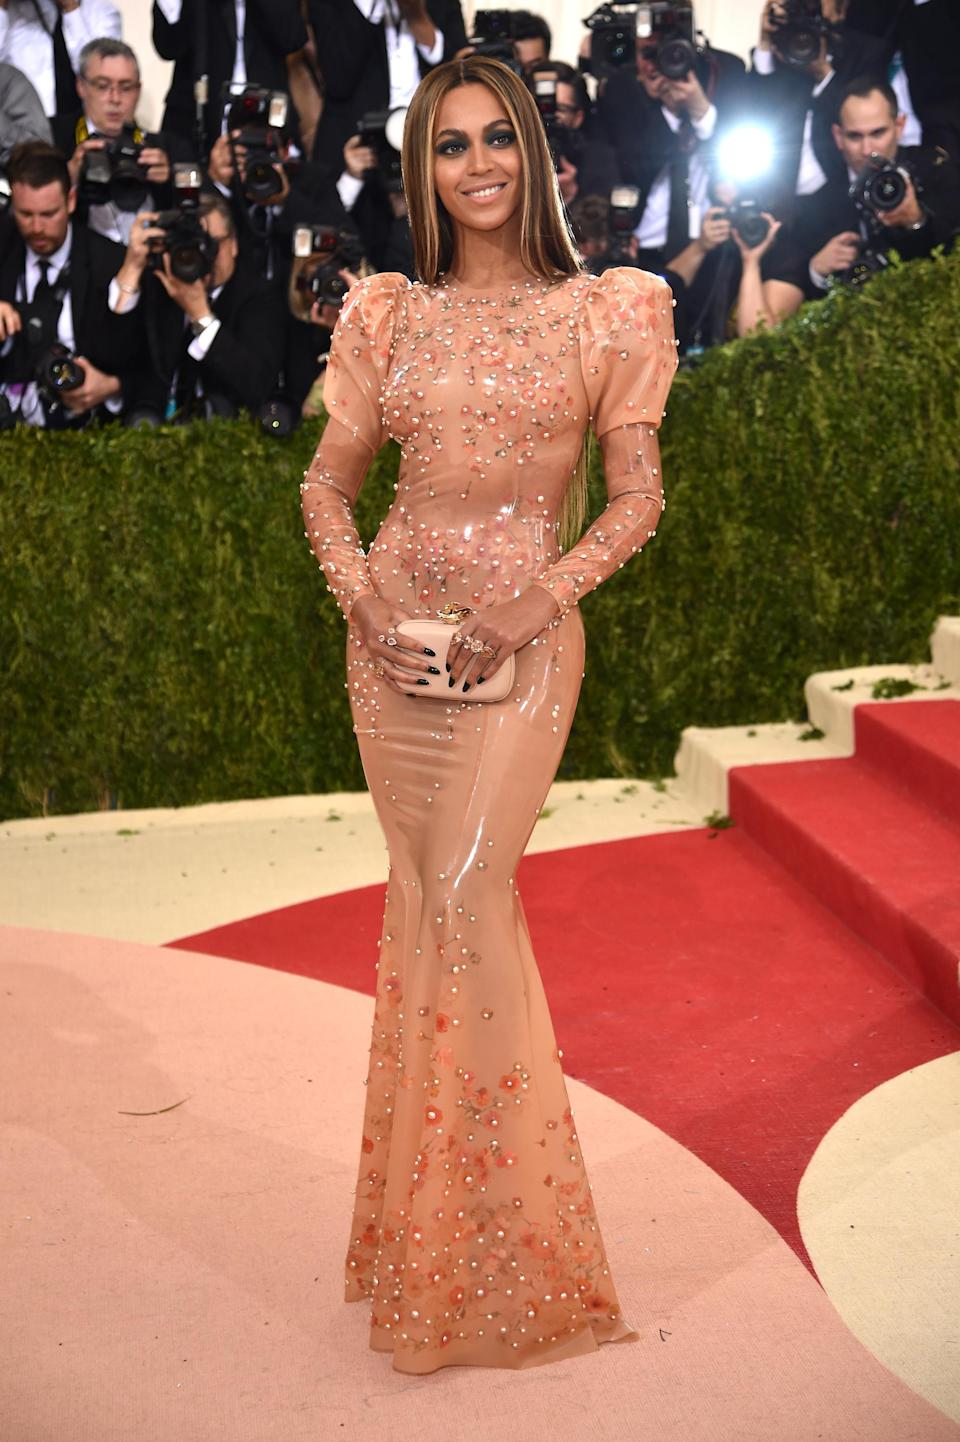 <p>For the 2016 Met Gala, Beyoncé donned a latex Givenchy dress embroided with hundreds of pearls and each one is rumoured to have cost £6,000. Yep, let that sink in for one moment. We're not sure how much truth is in the speculation but it certainly proved a major talking point.<br>But nothing could steer attention away from the fact that the songstress rocked up the red carpet alone after rumours of Jay-Z's infidelity broke. <em>[Photo: Getty]</em> </p>